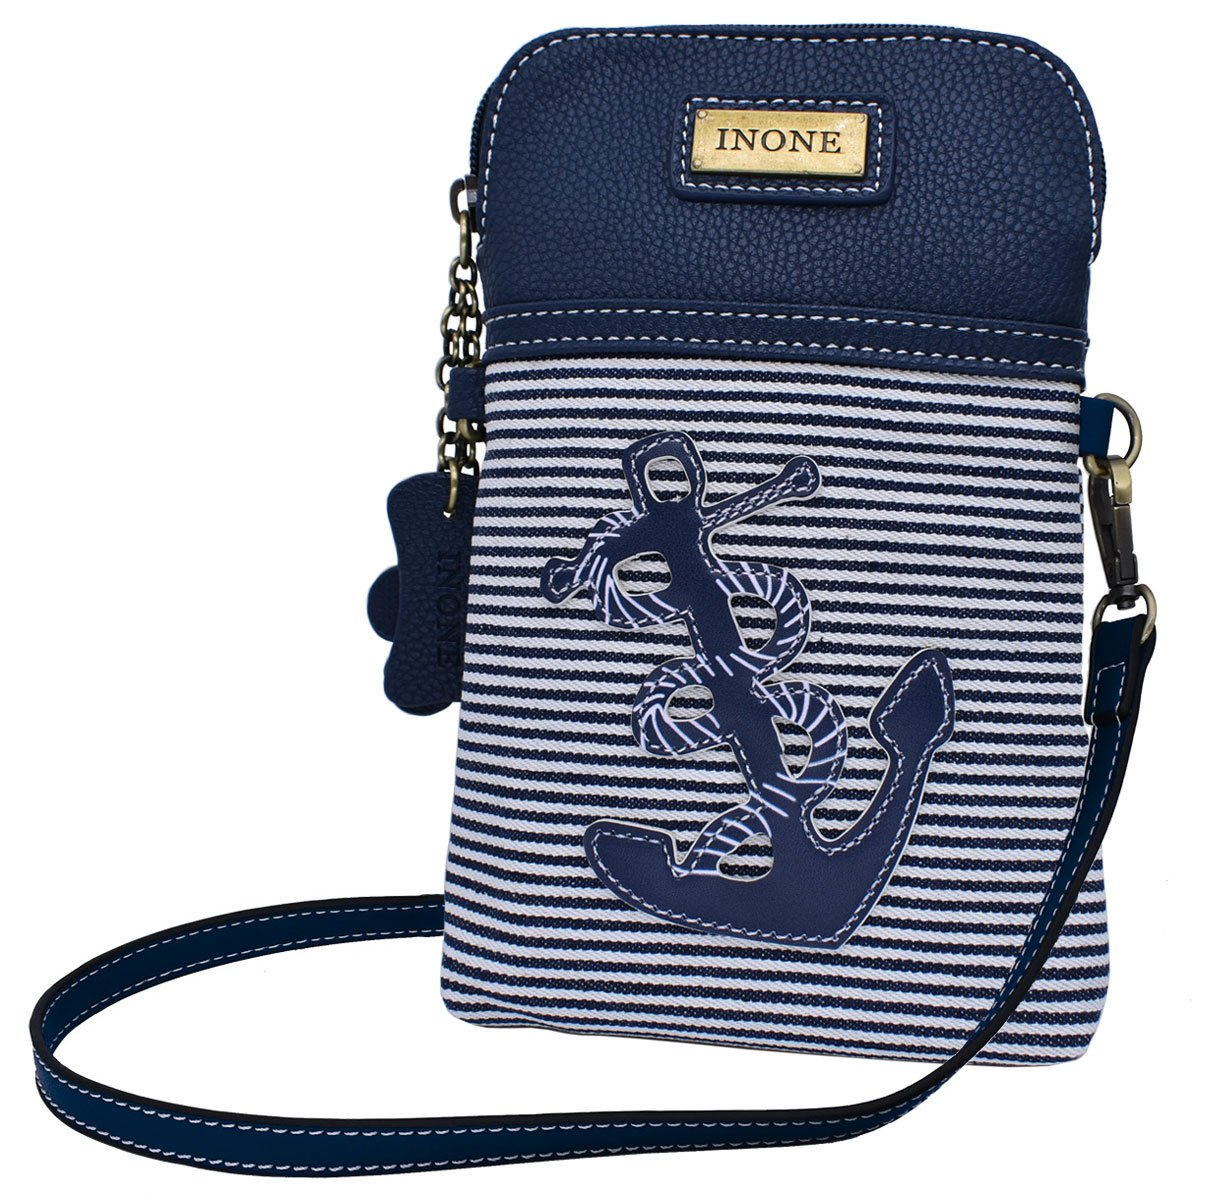 Anchor Crossbody Bag Nautical iPhone Cell Phone Purse Bag PU Leather Canvas Handbag for Smartphone Credit Card Passport Keys by inOne (Image #1)